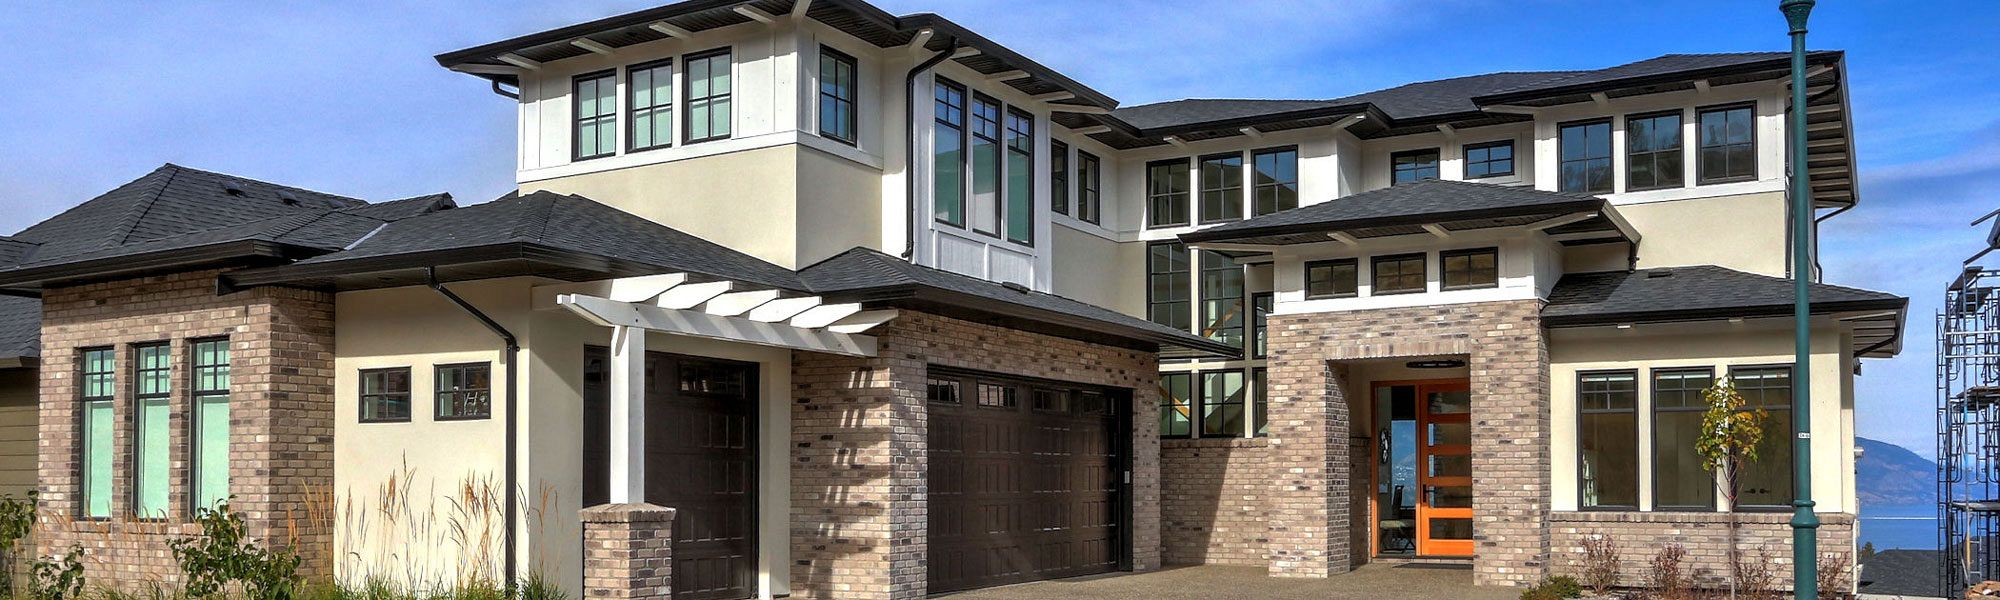 Front view of a three floor custom home build by Stark Homes